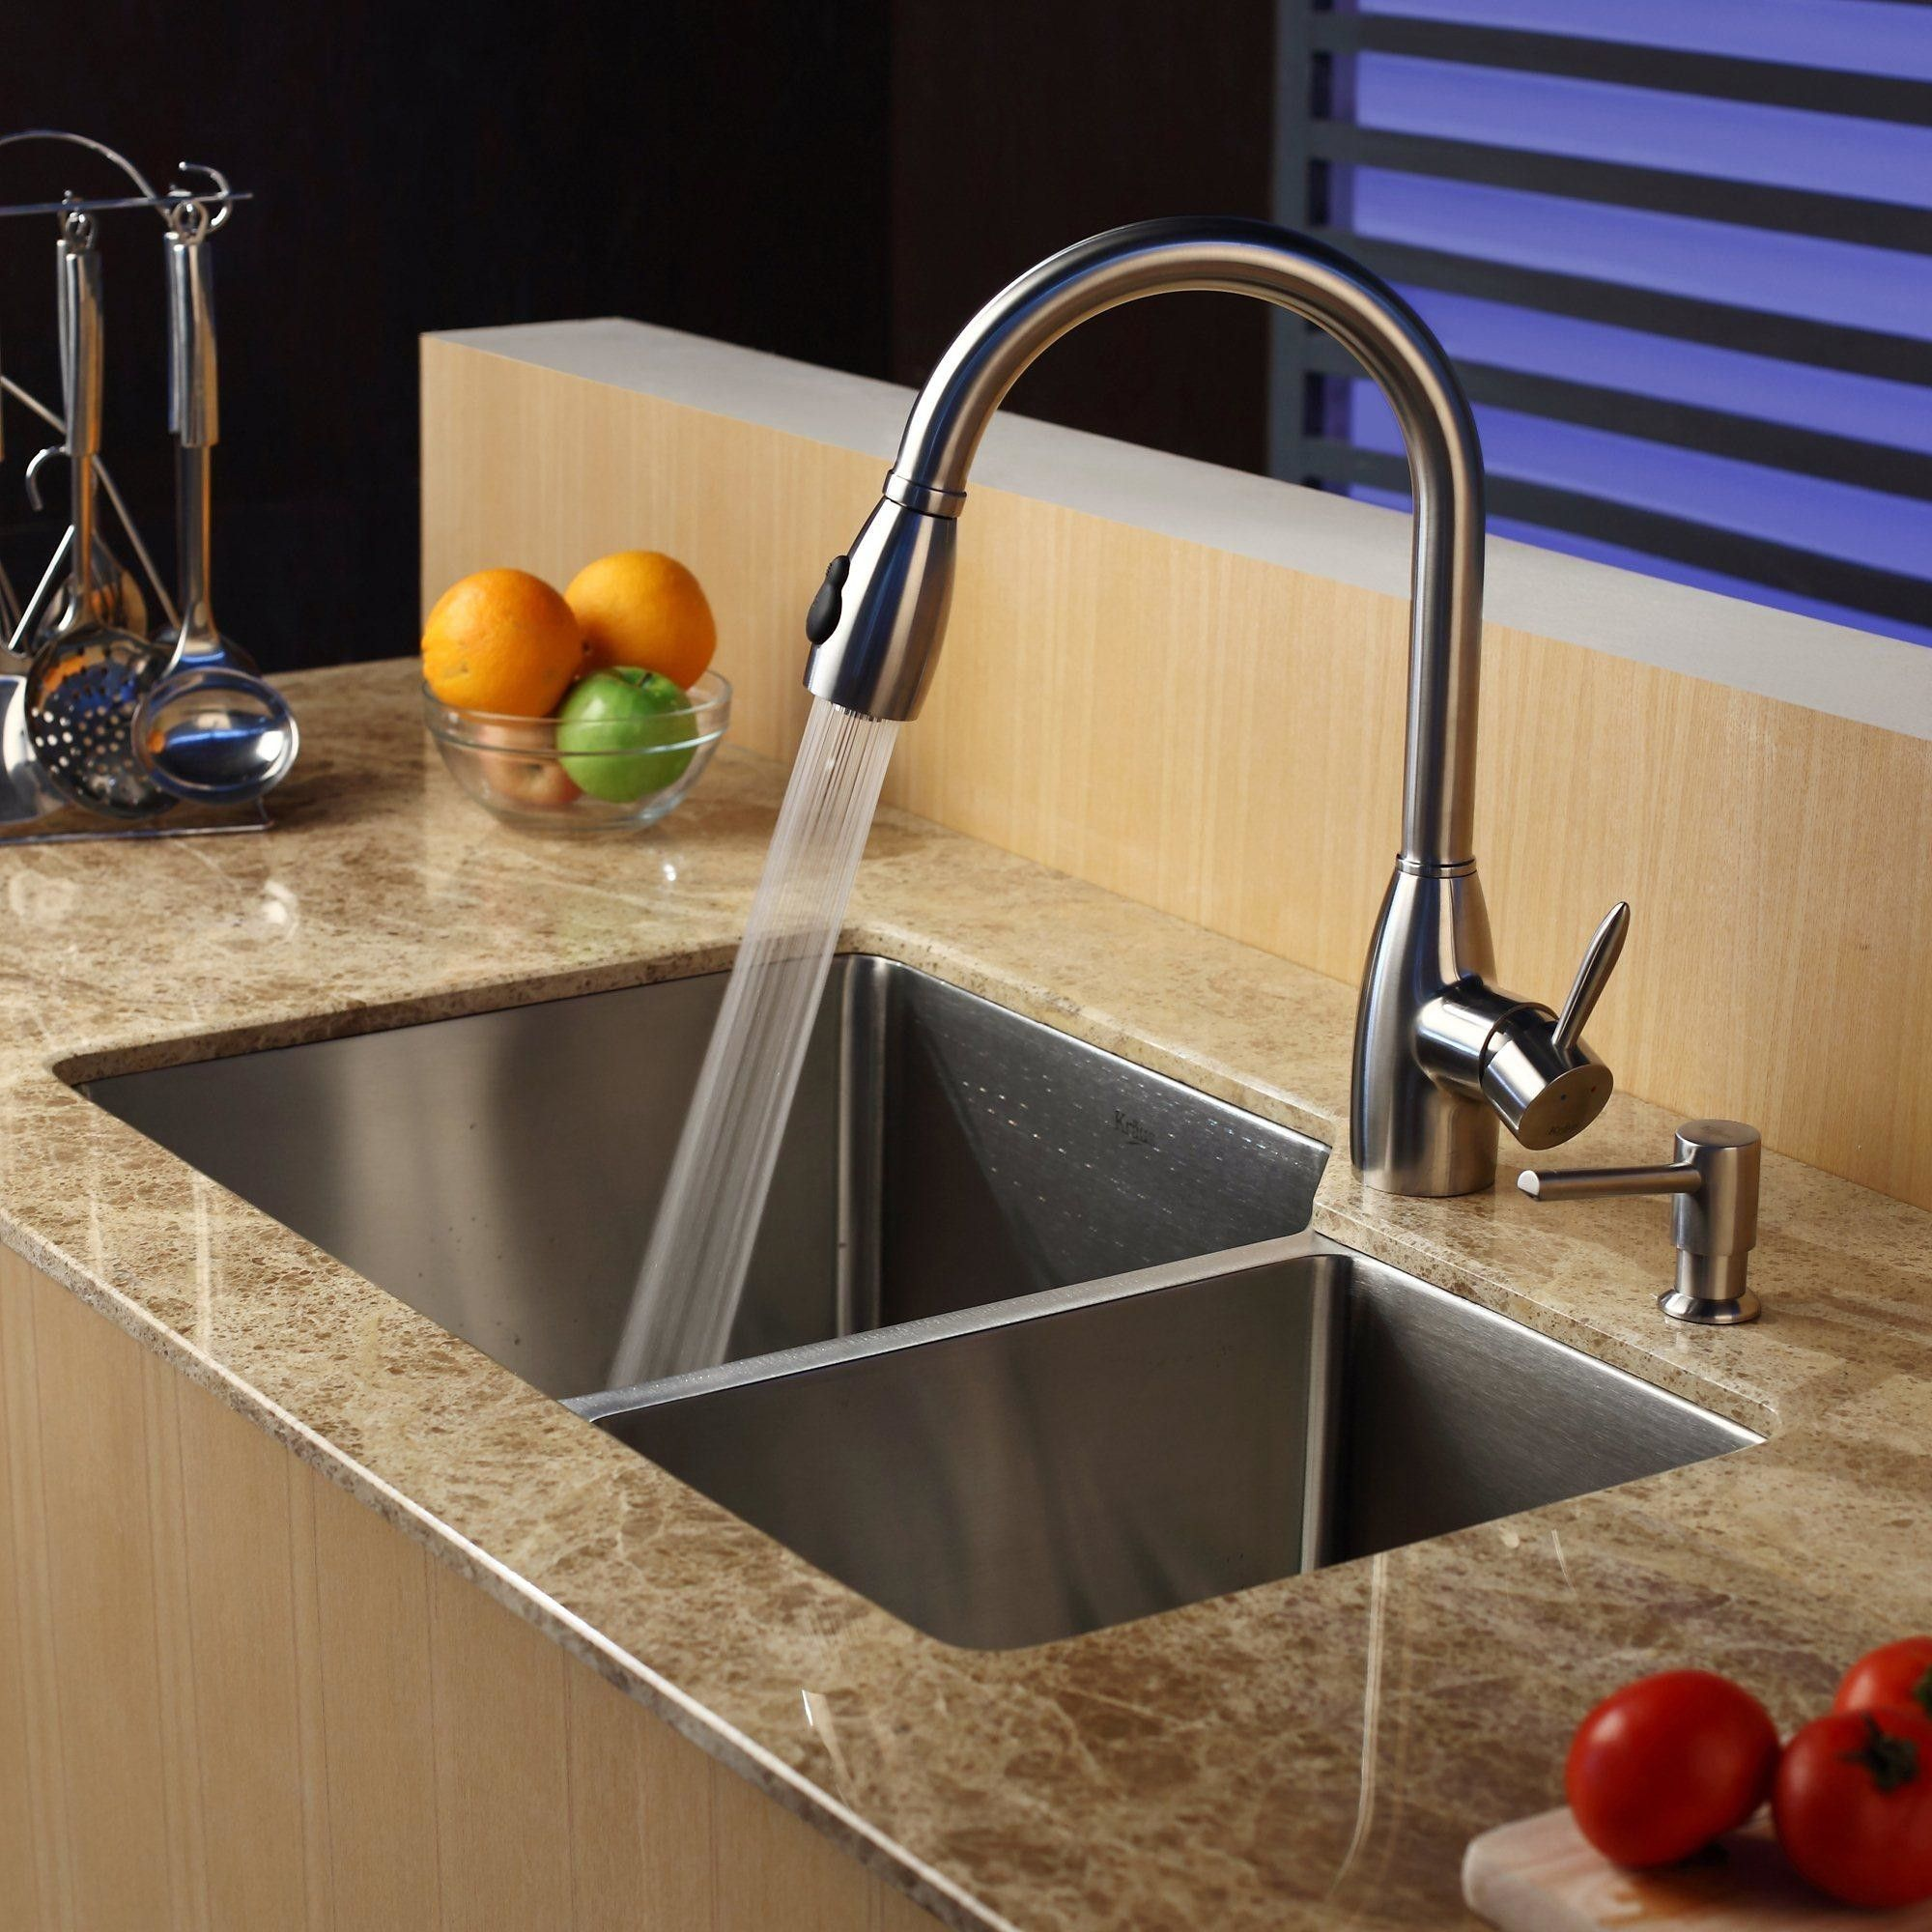 32 x 20 double bowl undermount kitchen sink with faucet and soap